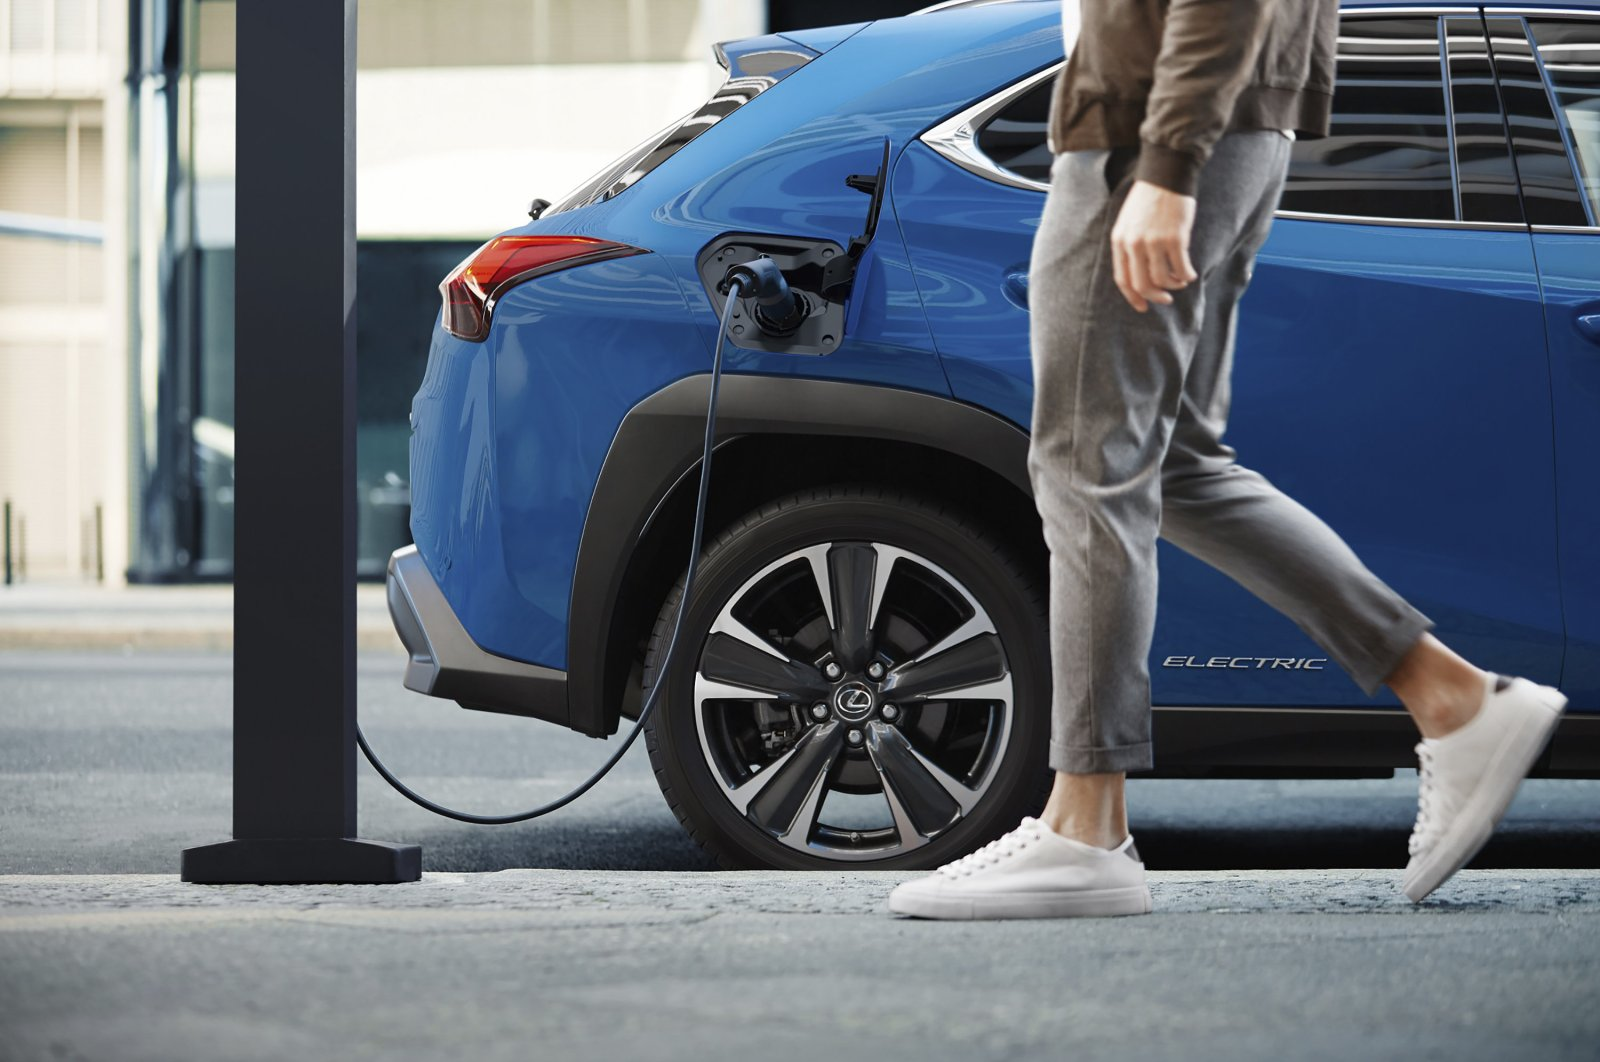 Hybrid car sales increased by 11.8% year-on-year in the January-May period. (File Photo)